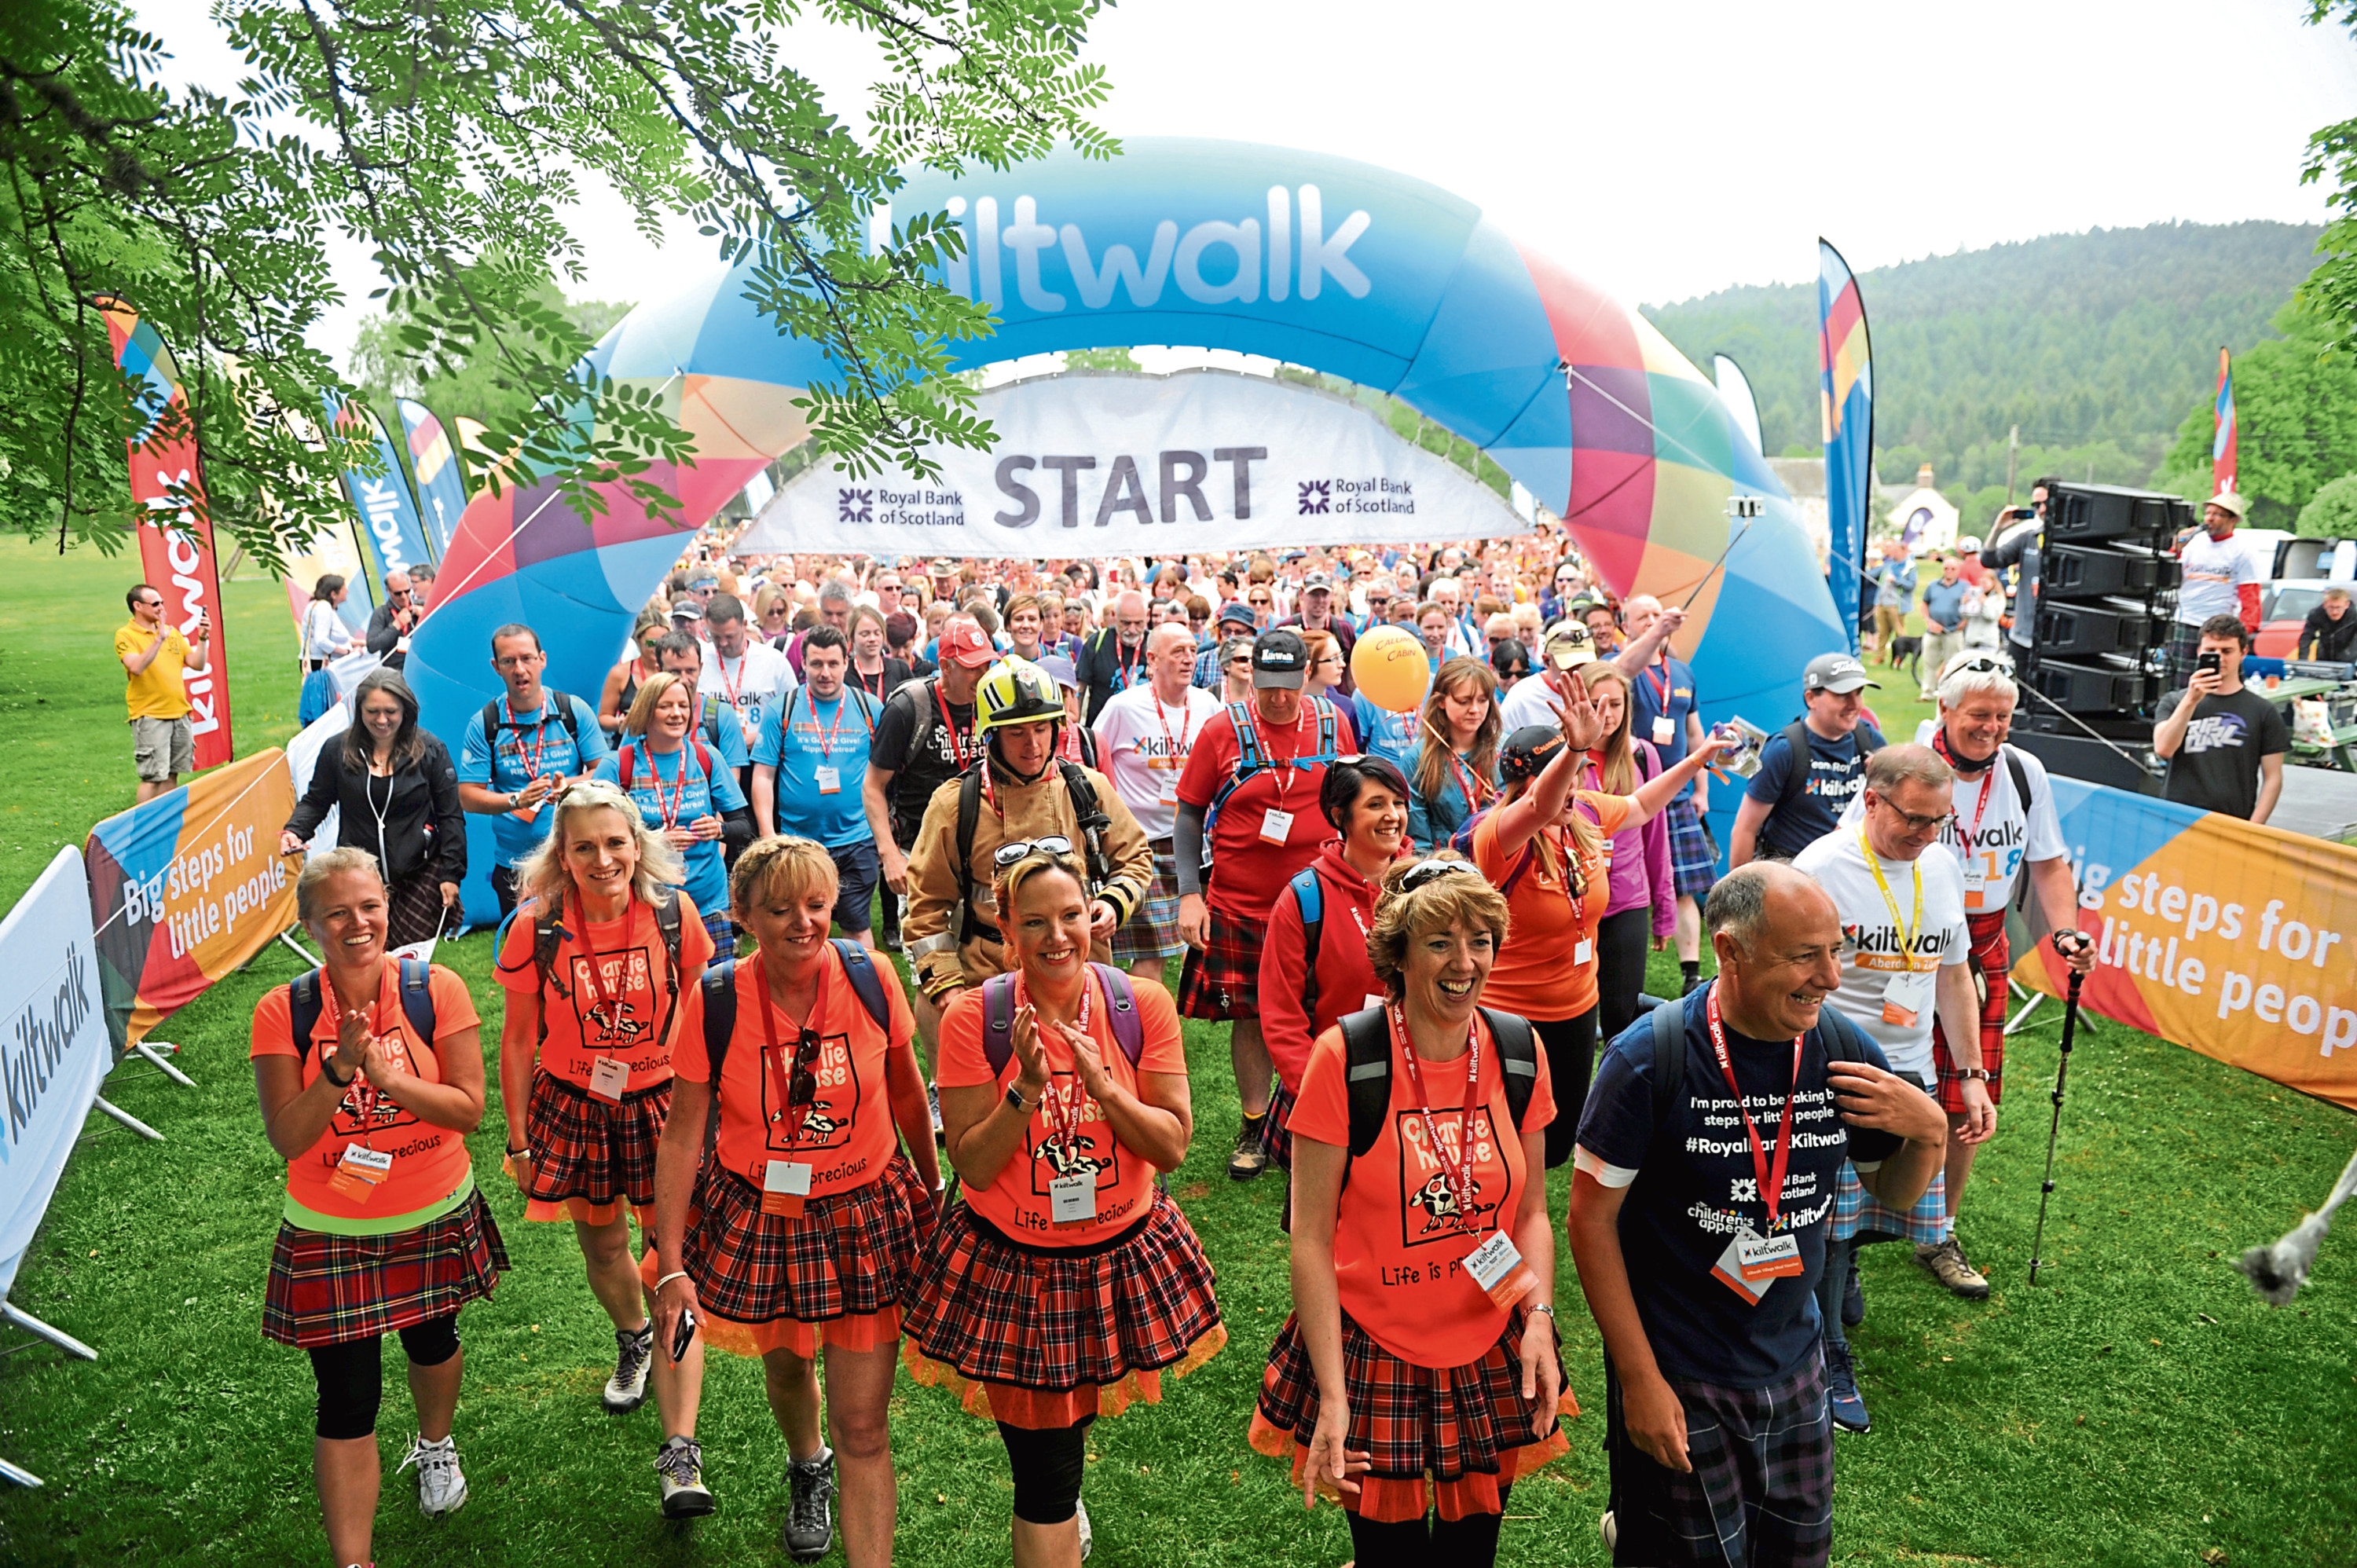 The start of the Mighty Stride walk in Potarch in 2018